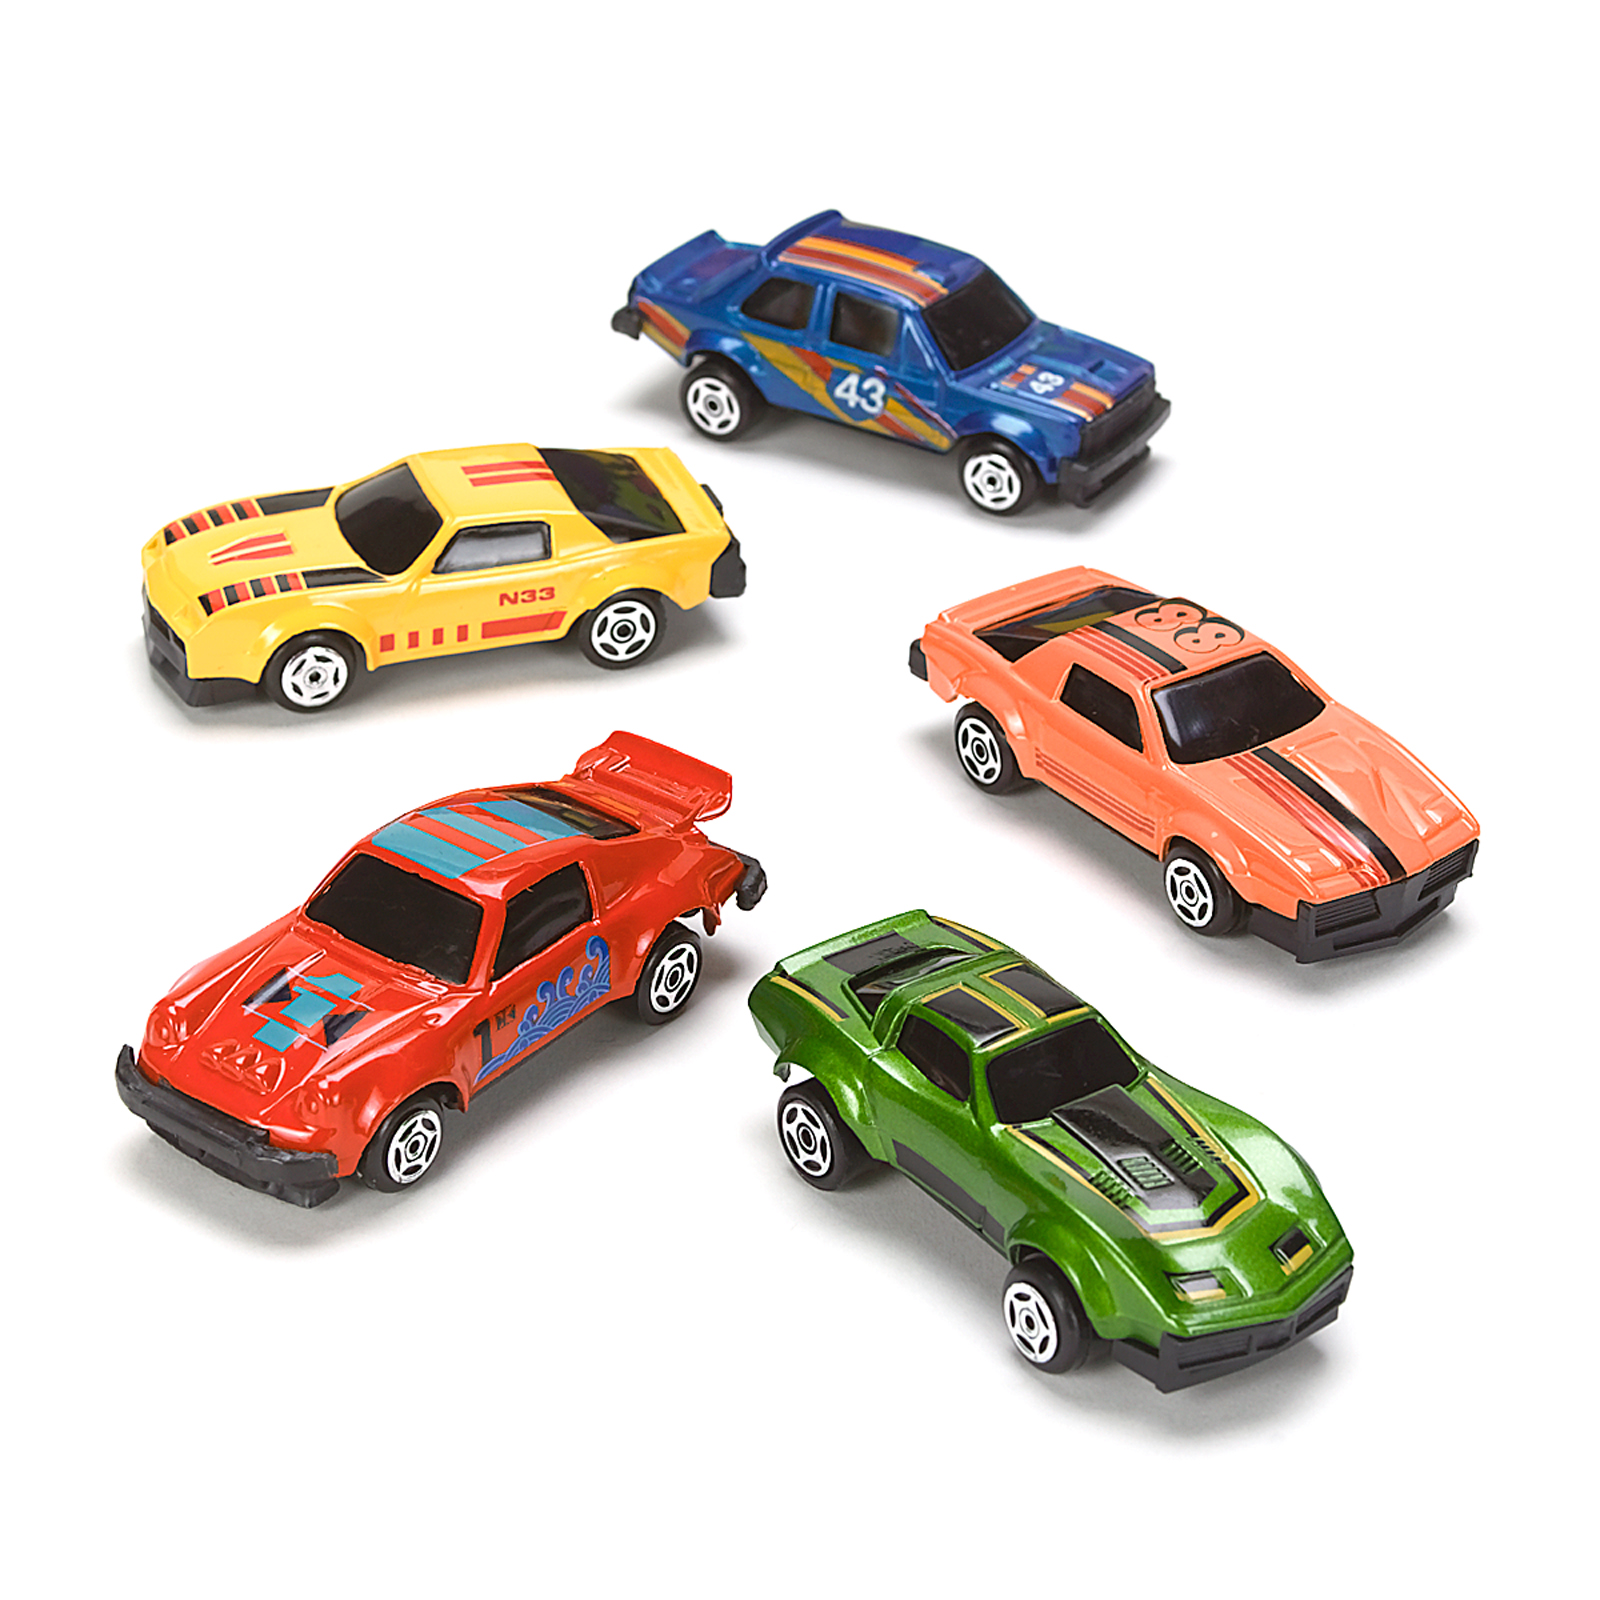 Hot Wheels Toys : Chic geek diary noah s summer favourites